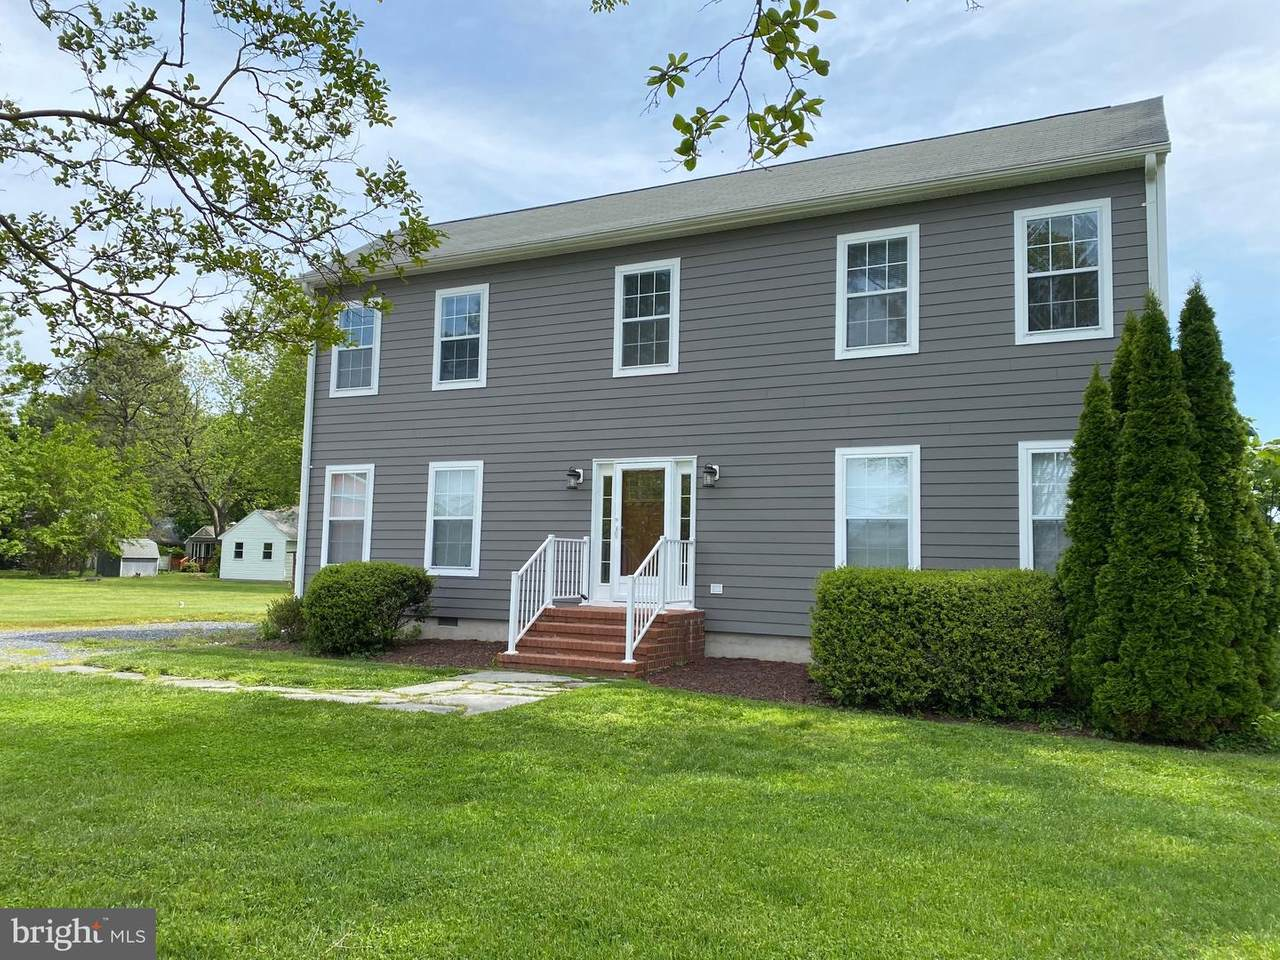 6261 Long Point Road - Photo 1